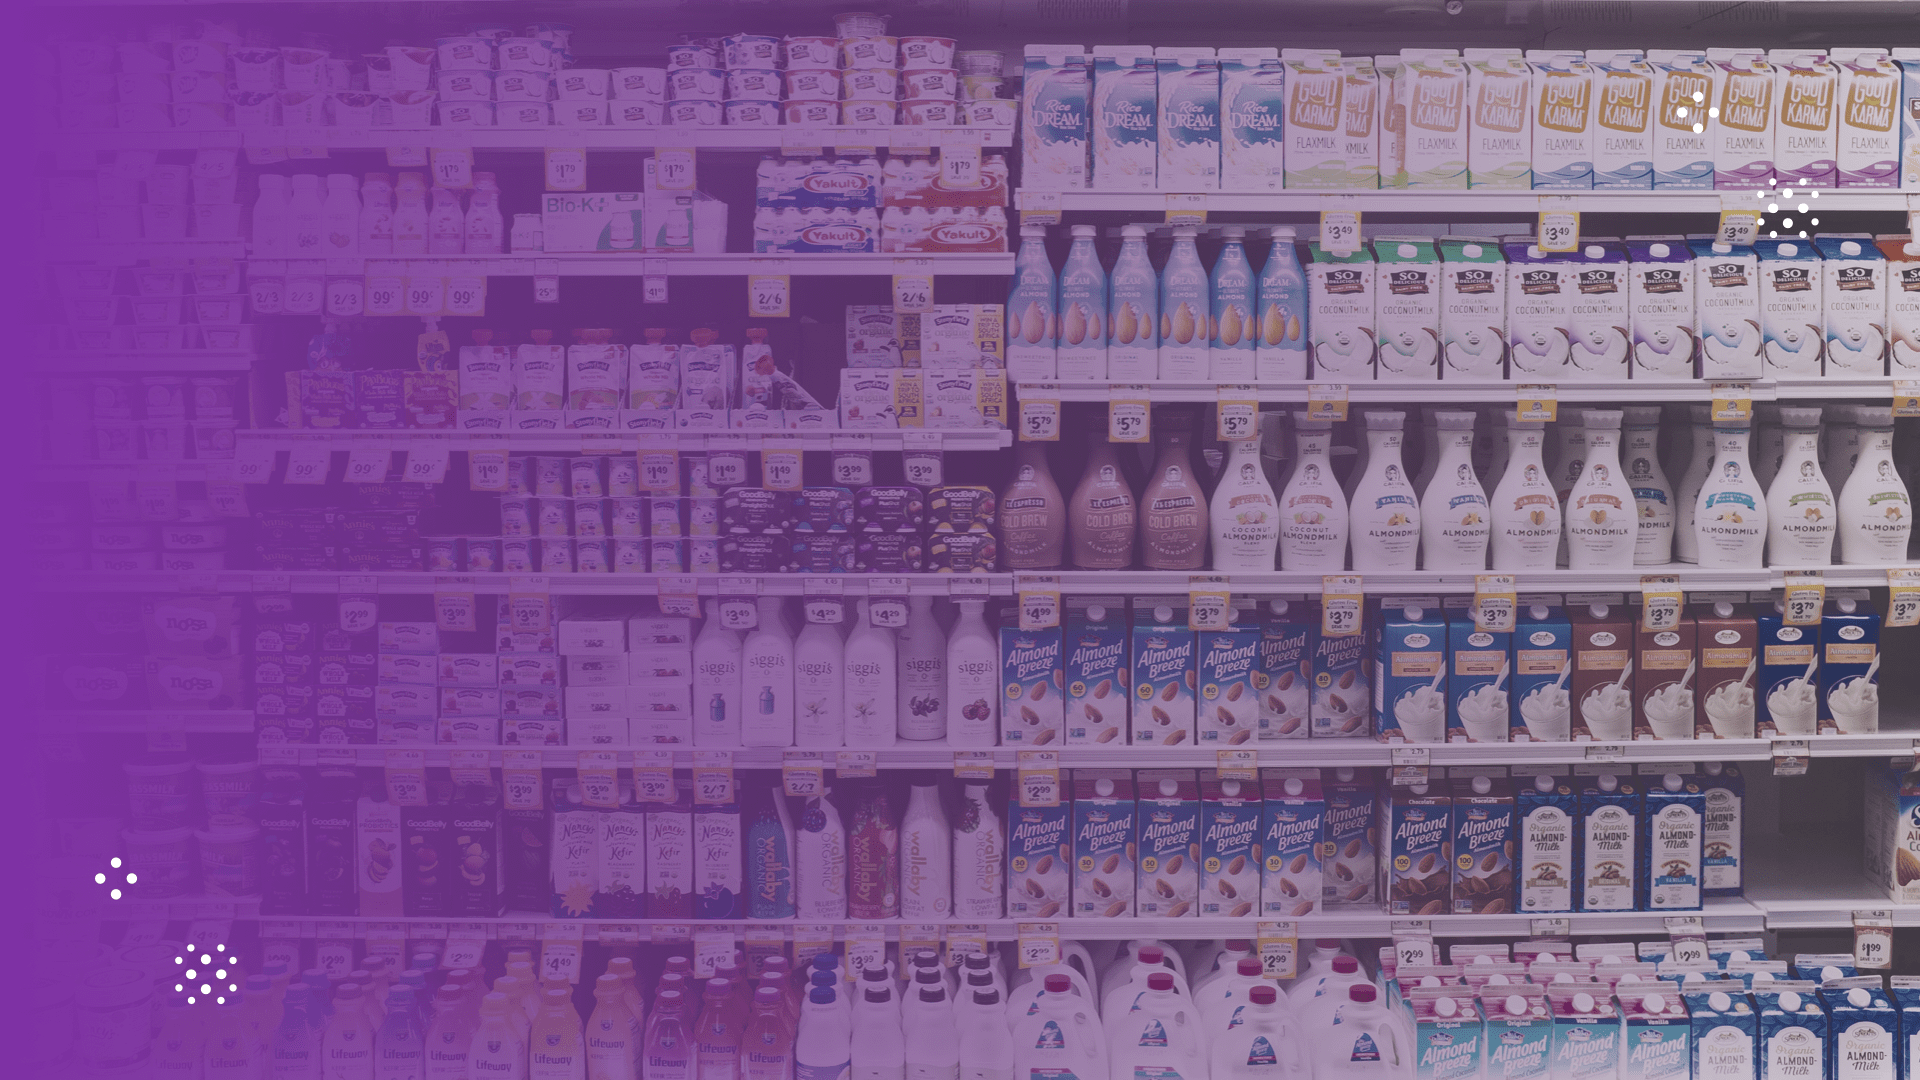 products in the refrigerated section of a grocery store